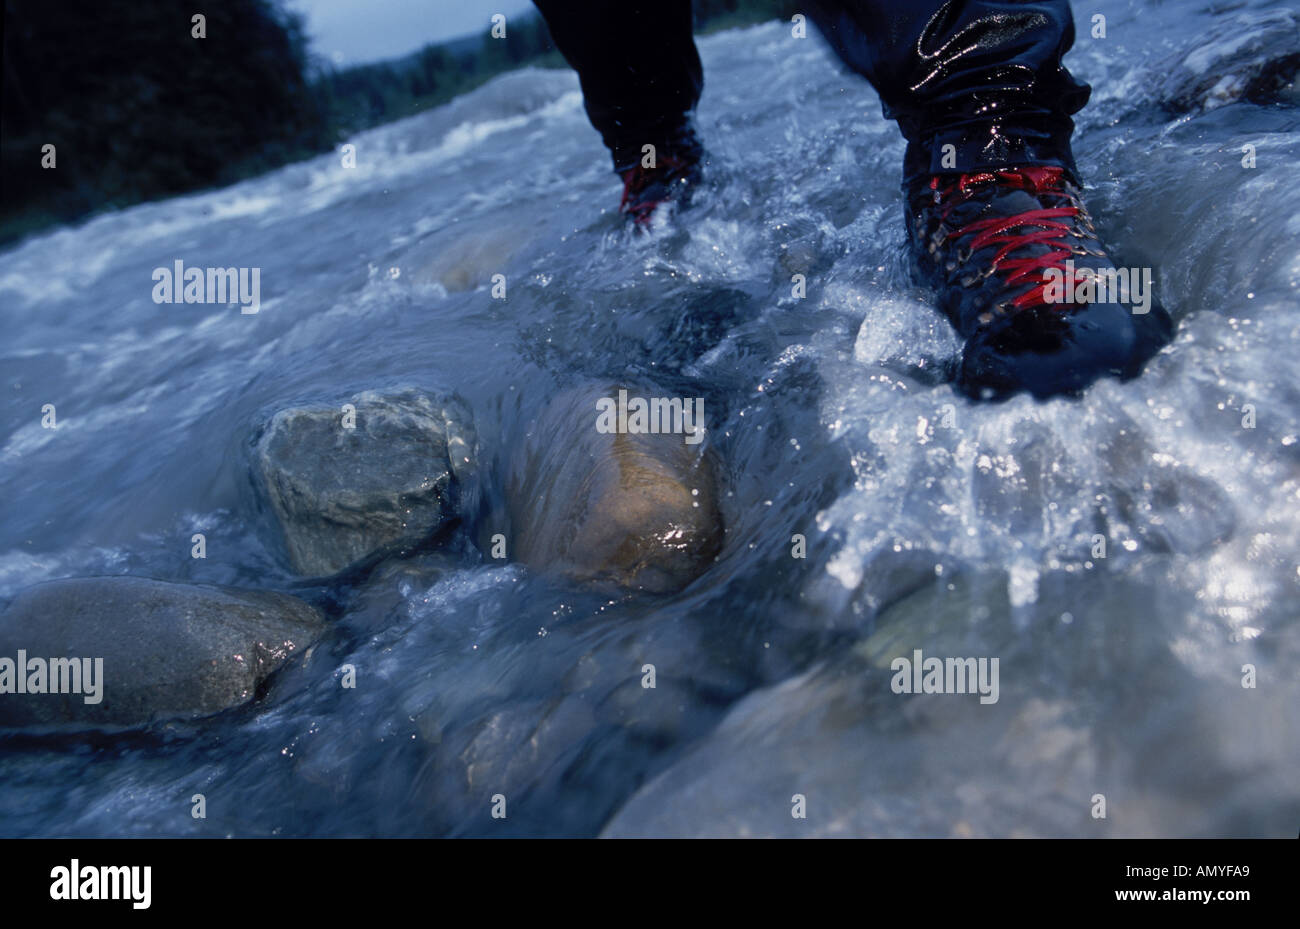 Close up of Hiker s Boot on Rocky Stream Bed Riley Creek - Stock Image